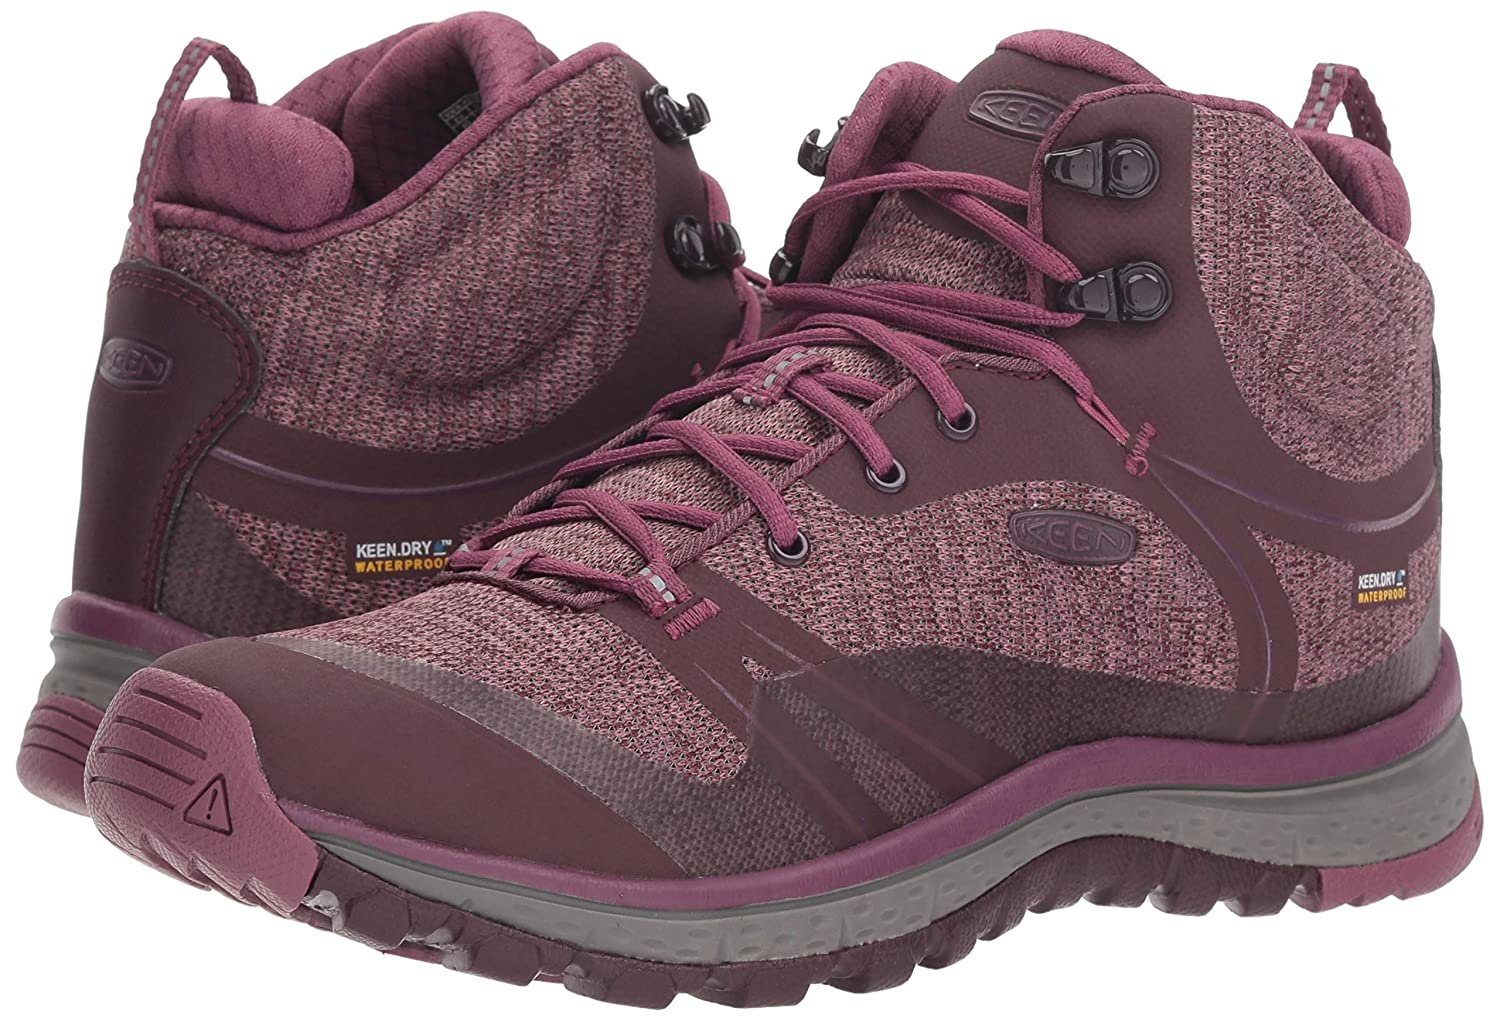 KEEN Women's Terradora Mid Waterproof Hiking Shoe B077KJJV53 8.5 M US|Wine Tasting/Tulipwood